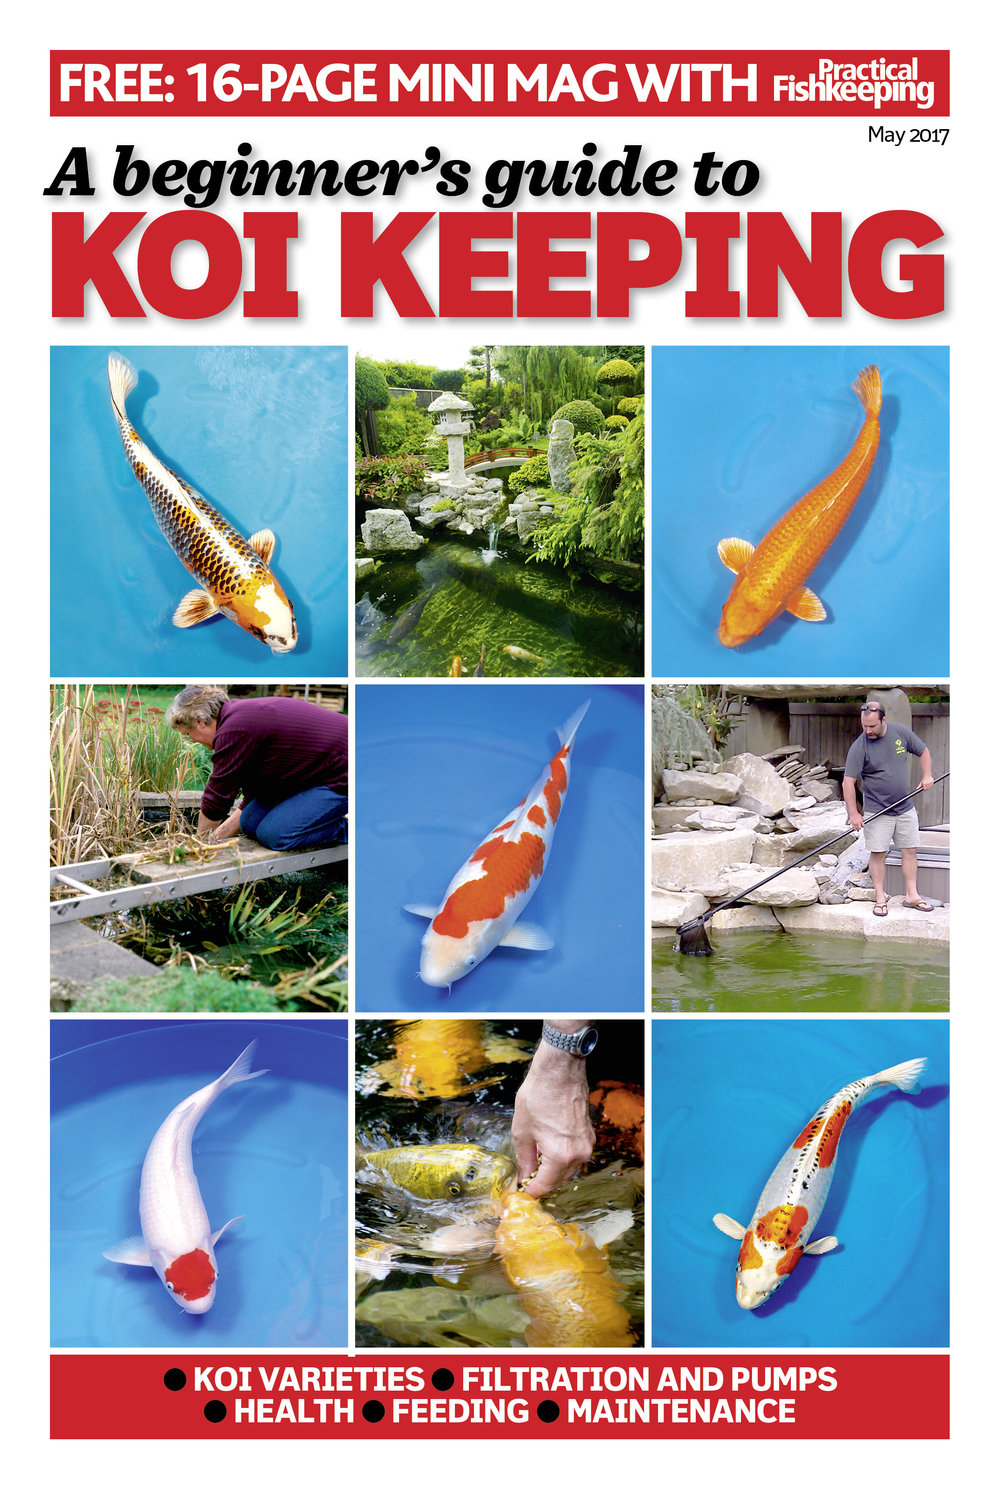 Look for the 16-page Koi supplement.